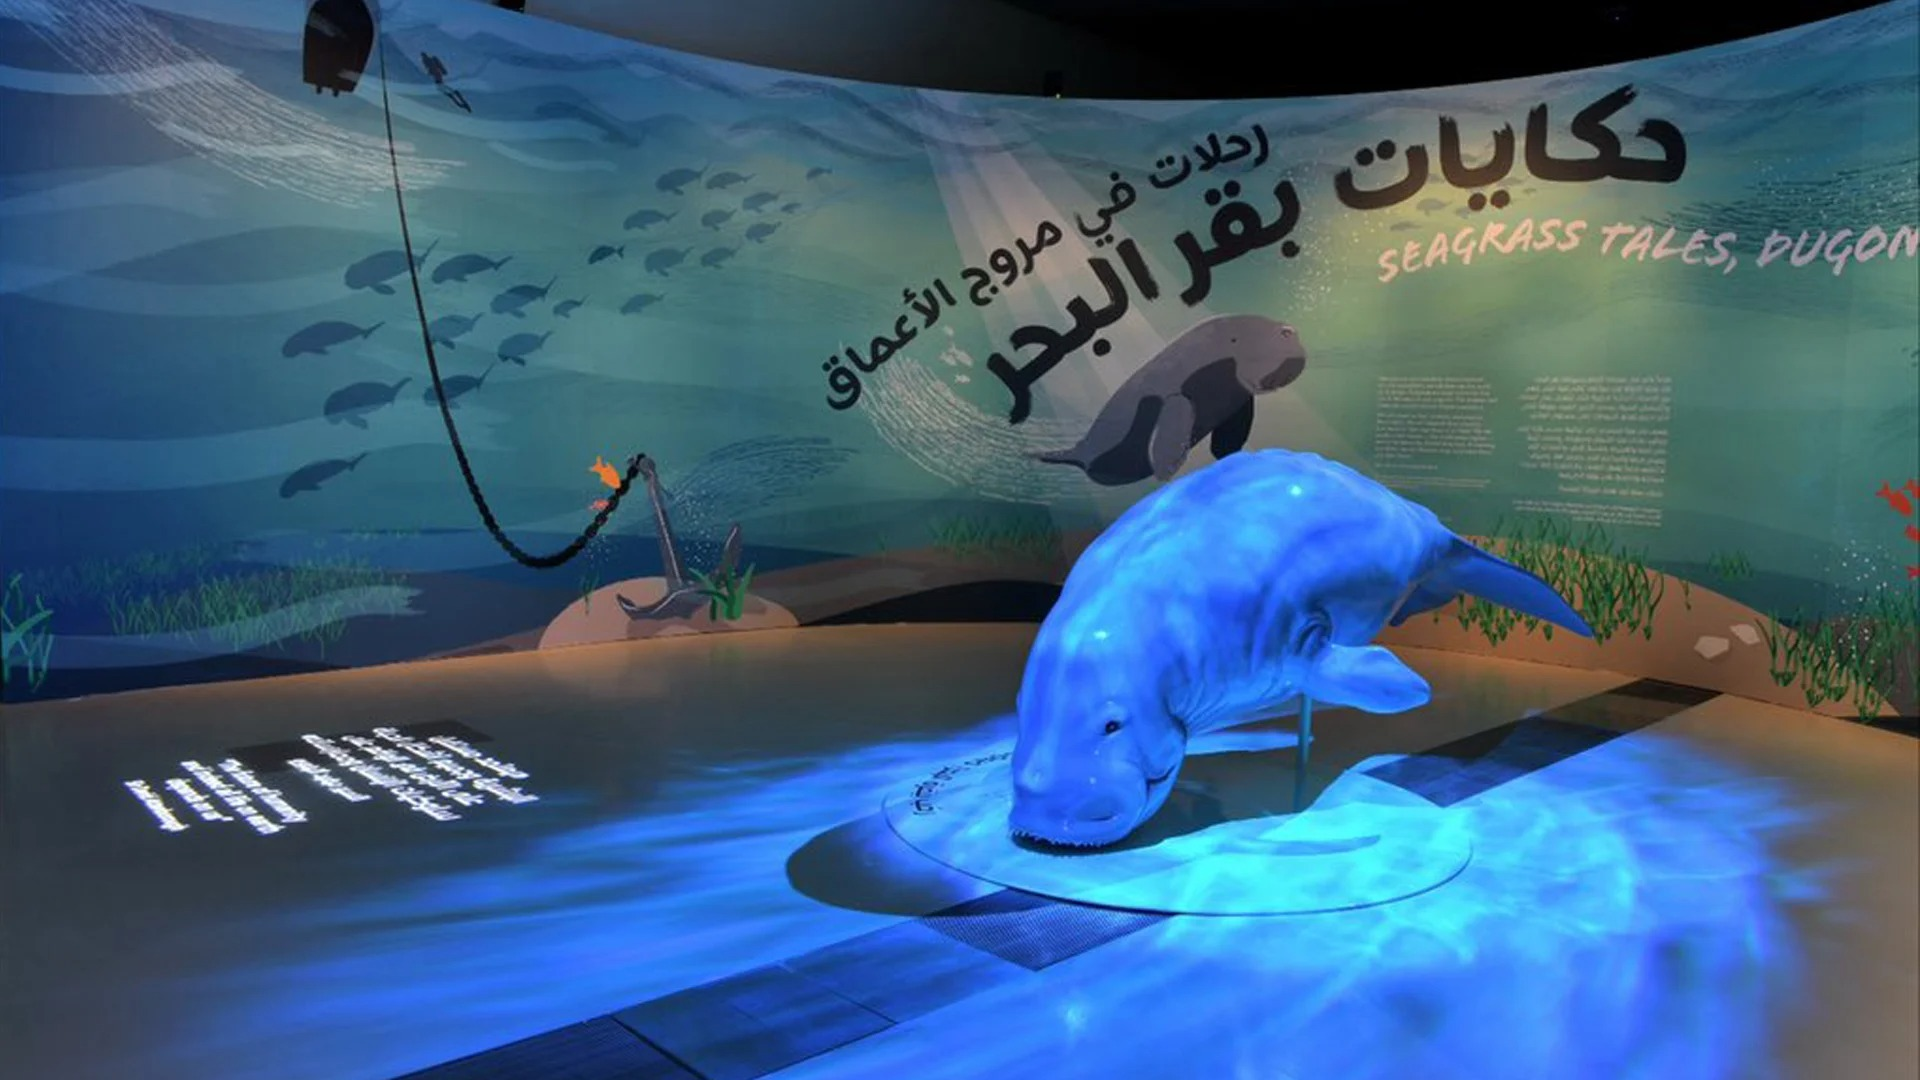 NMoQ Presents First Natural History Exhibition on Dugong